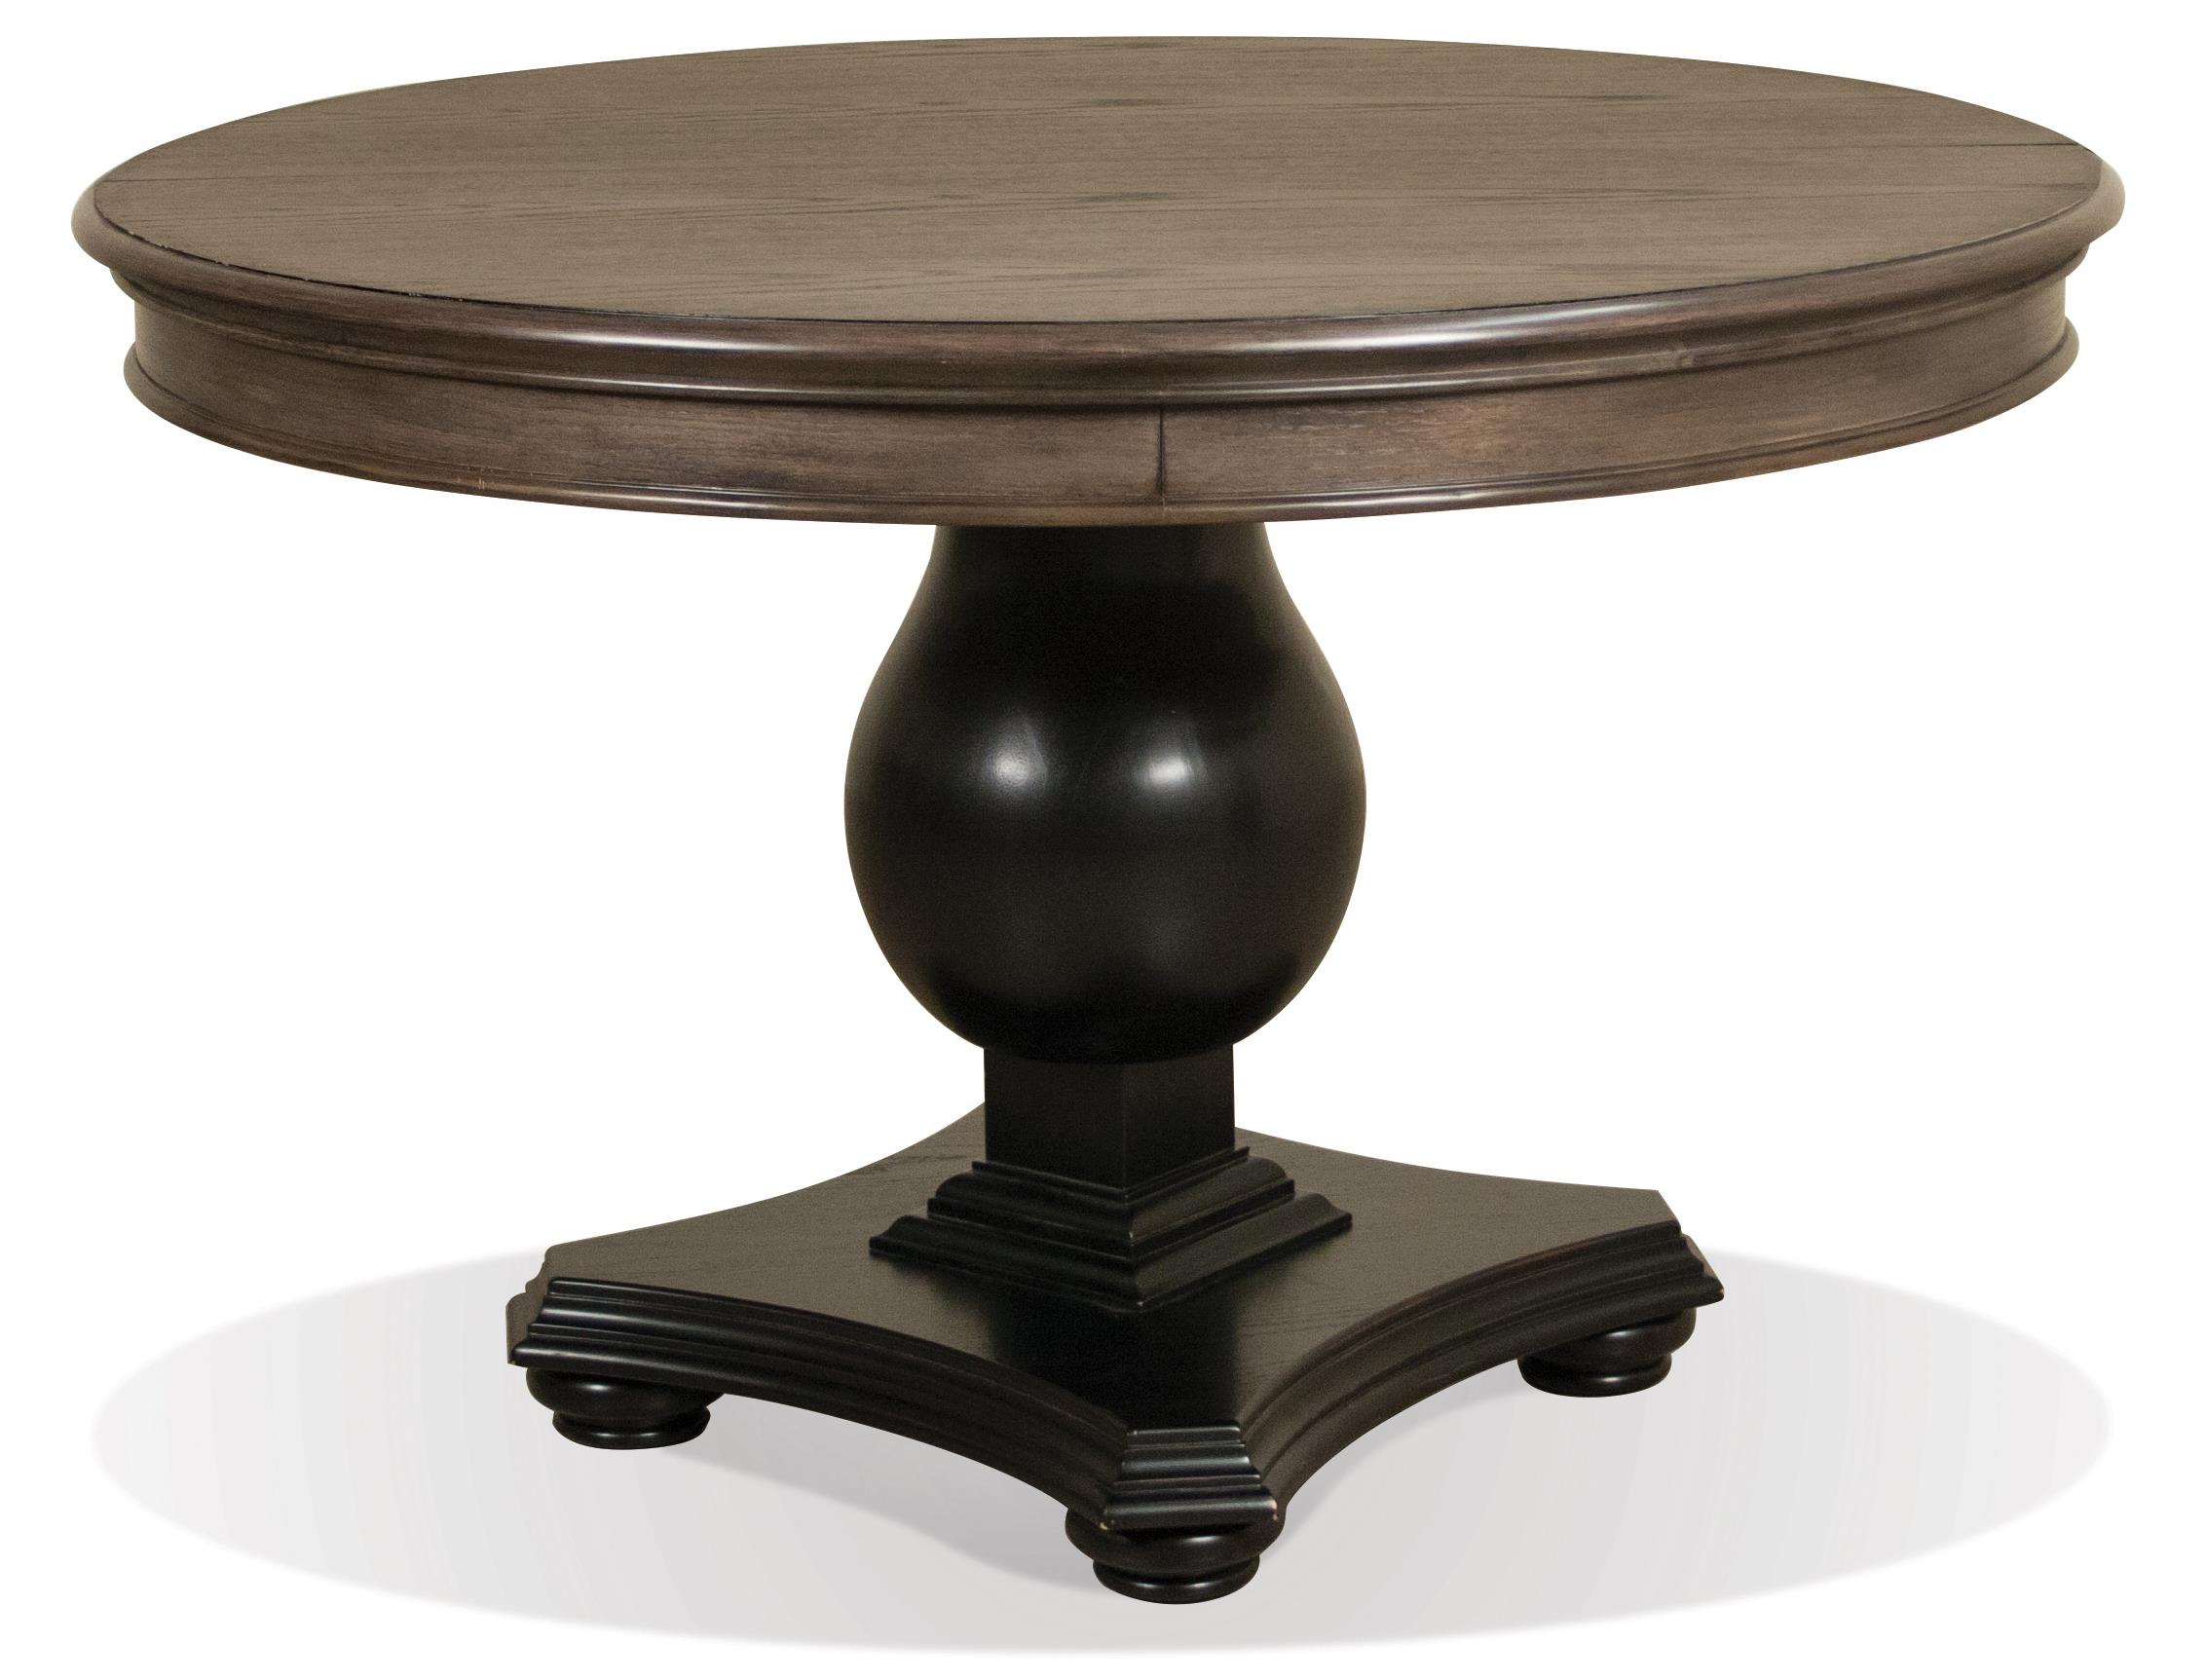 Riverside furniture belmeade round extension dining table for Round table 52 nordenham